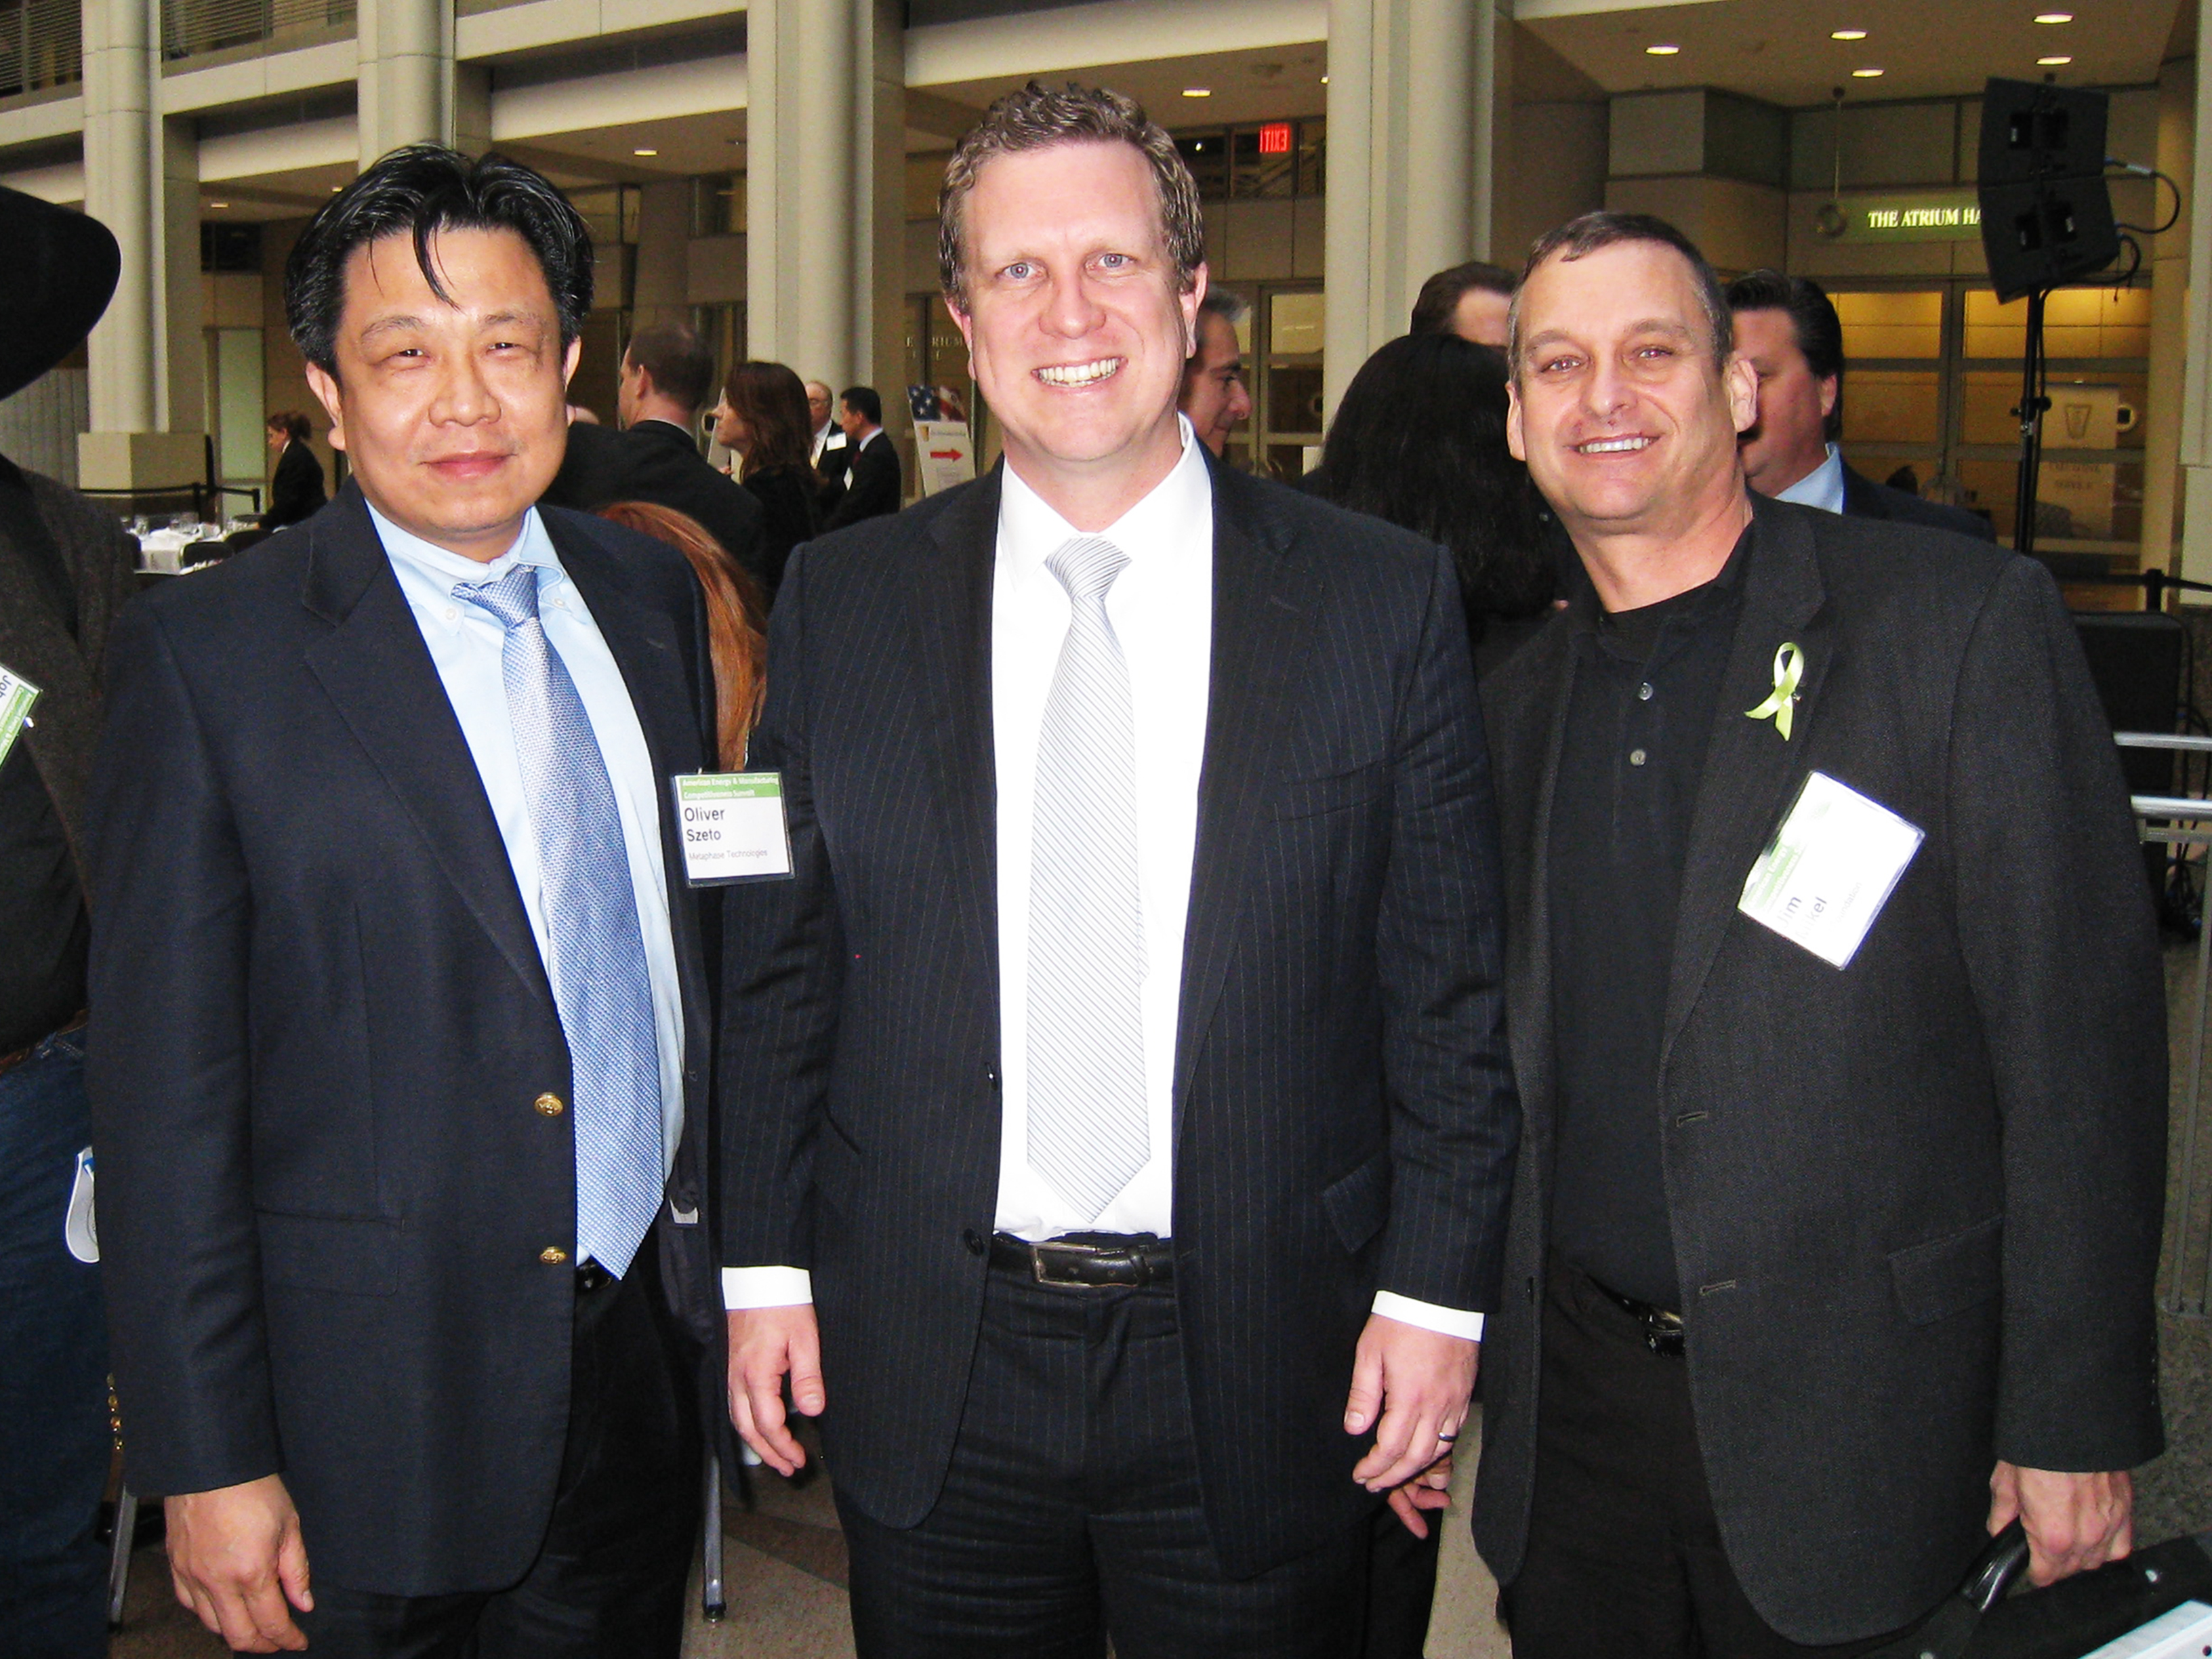 Szeto, pictured above with David Danielson, Assistant Secretary for Energy Efficiency and Renewable Energy and Jim Mikel of The Spirit Foundation, at the White House.